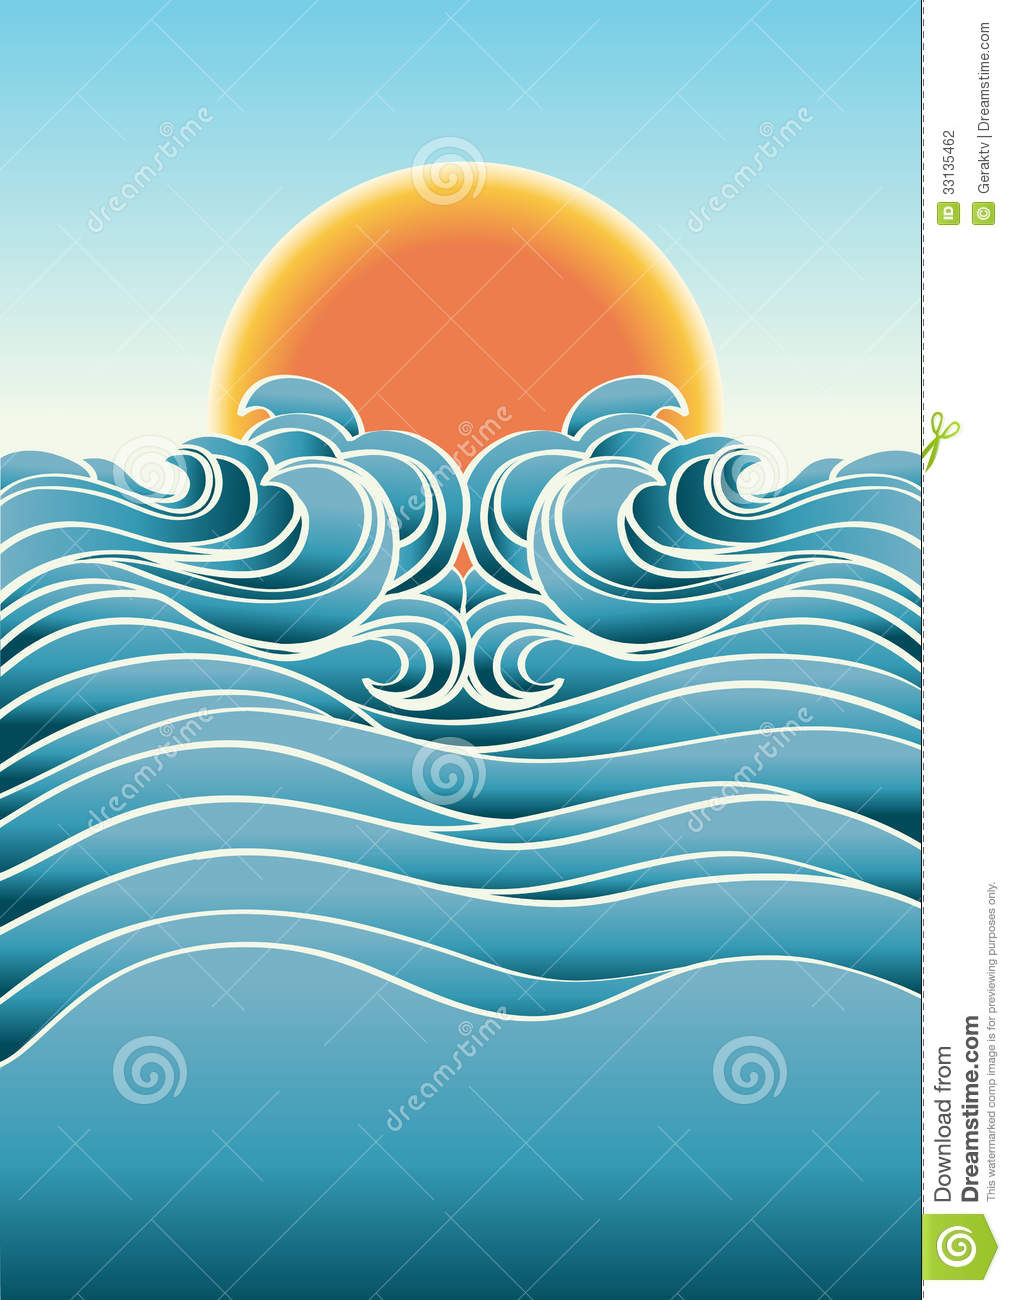 Seascape abstract background with sunlight.Vector